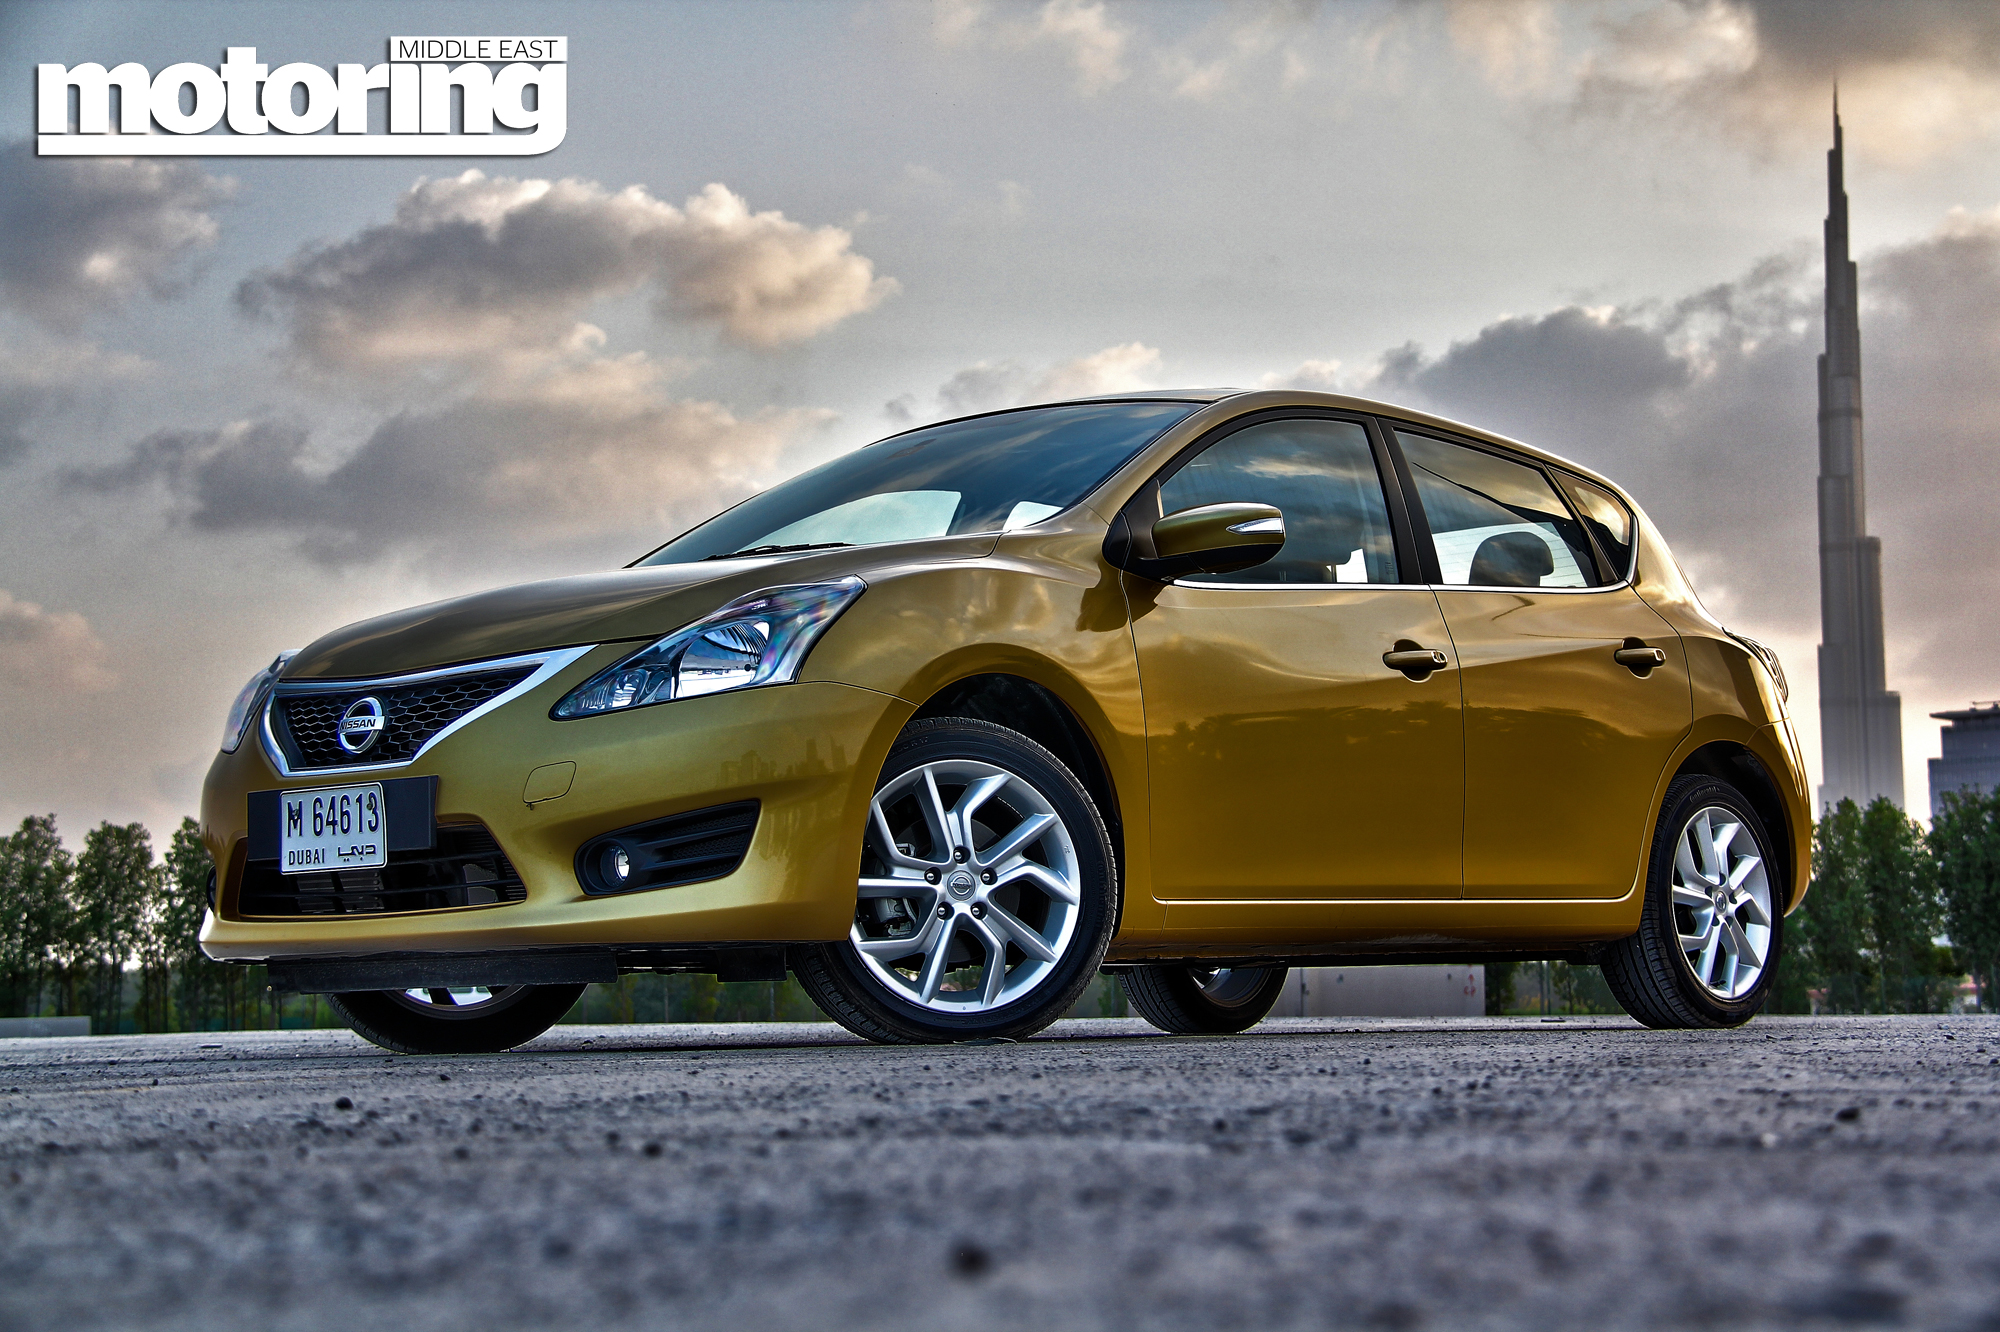 2014 Nissan Tiida Review  Motoring Middle East Car news Reviews